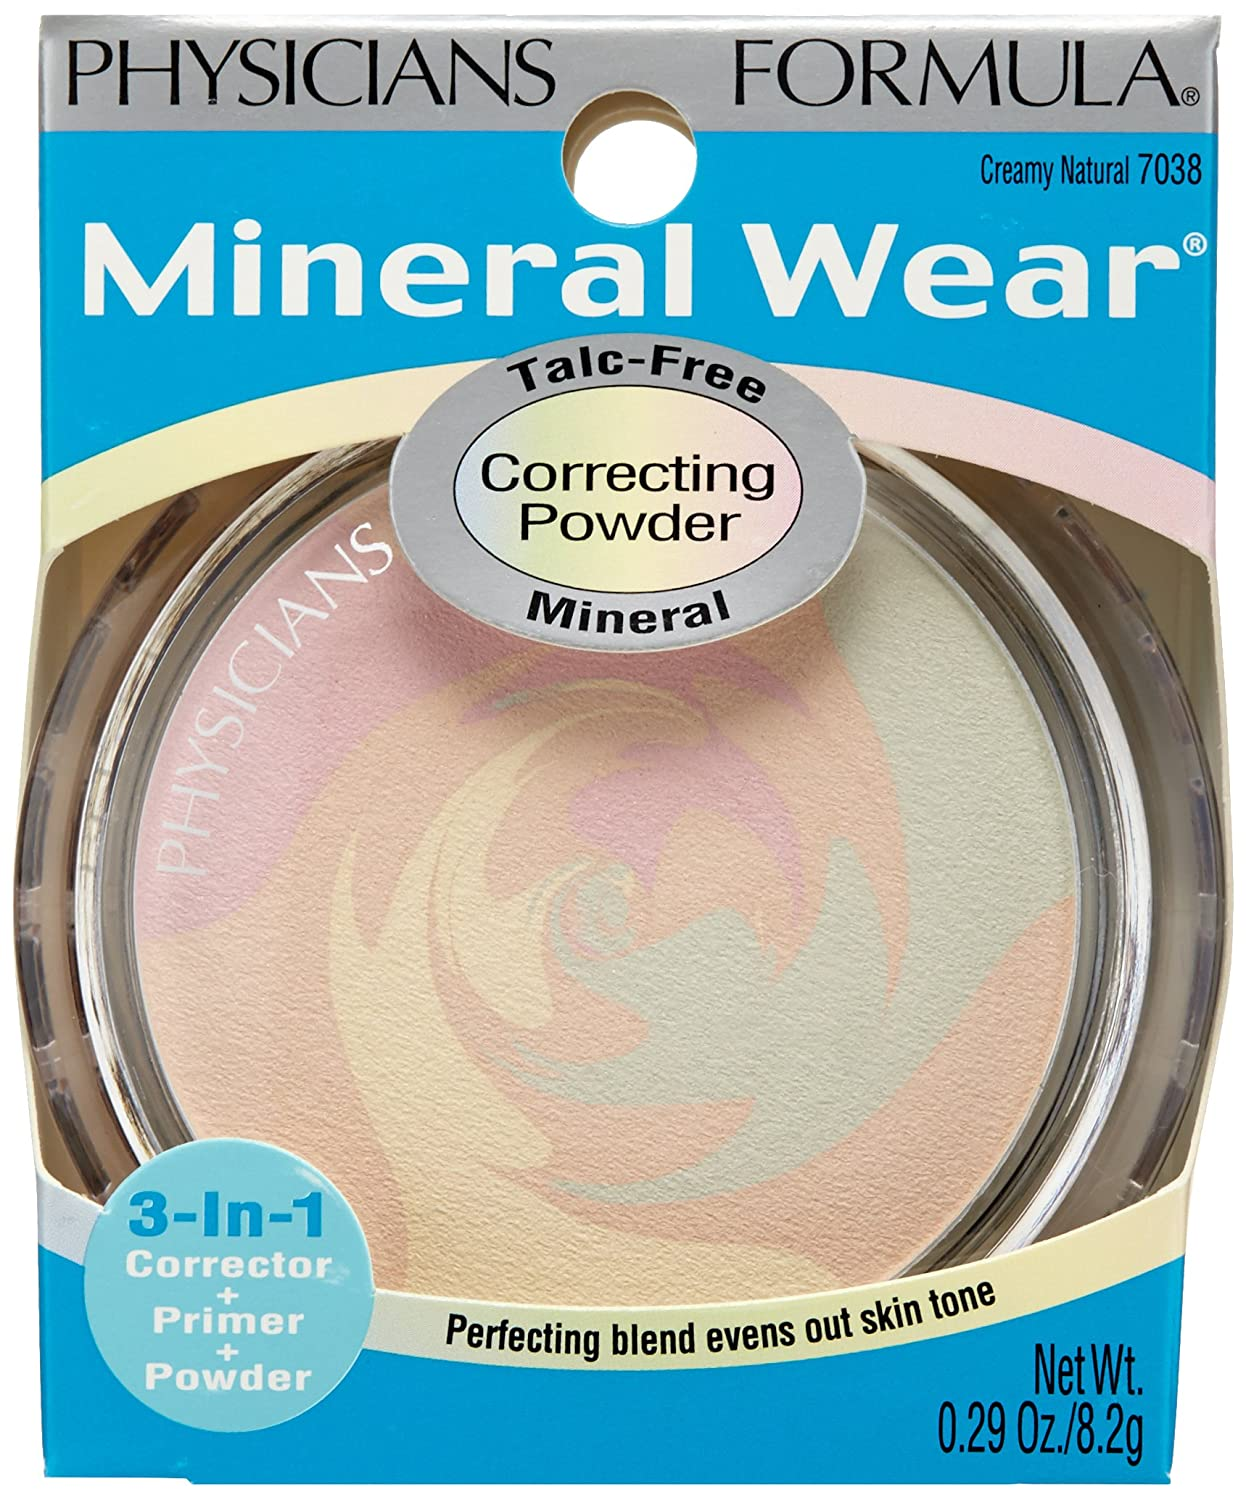 Mineral Wear Correcting Kit by Physicians Formula #18